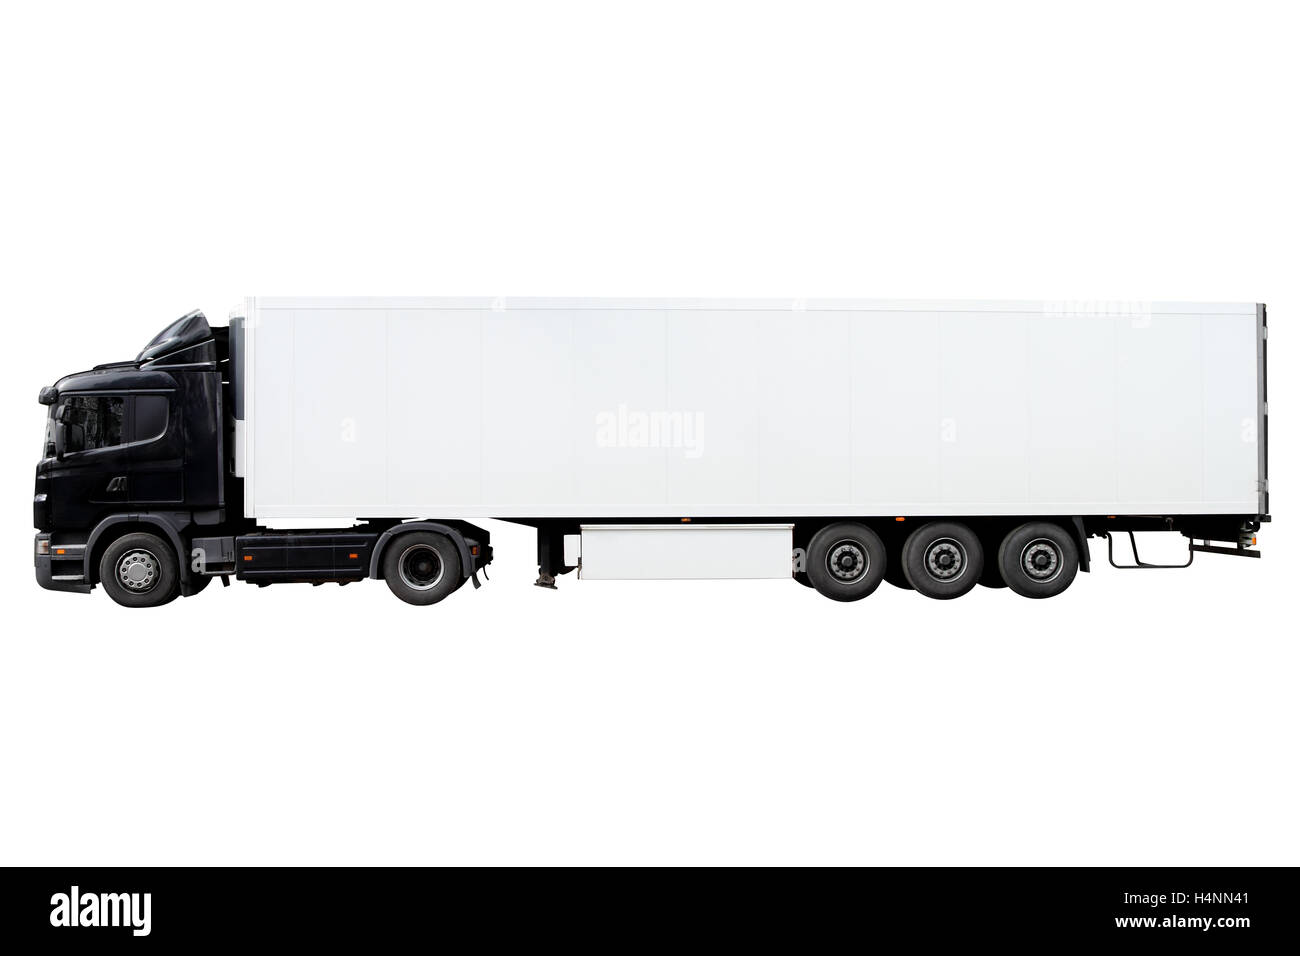 Modern truck with trailer isolated on white background. - Stock Image